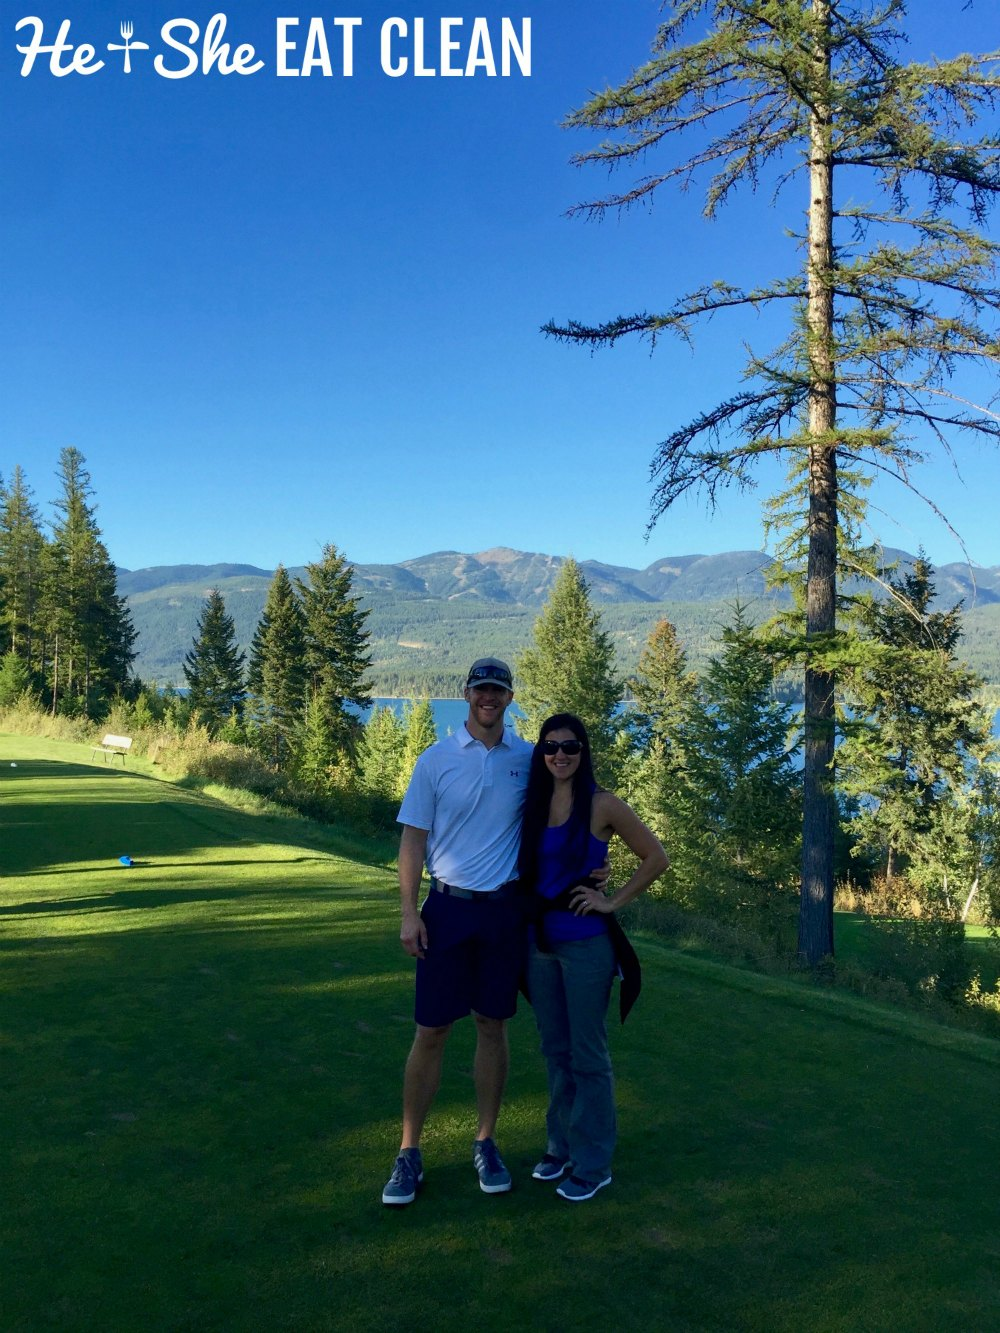 Whitefish Lake Golf Club in Whitefish, Montana